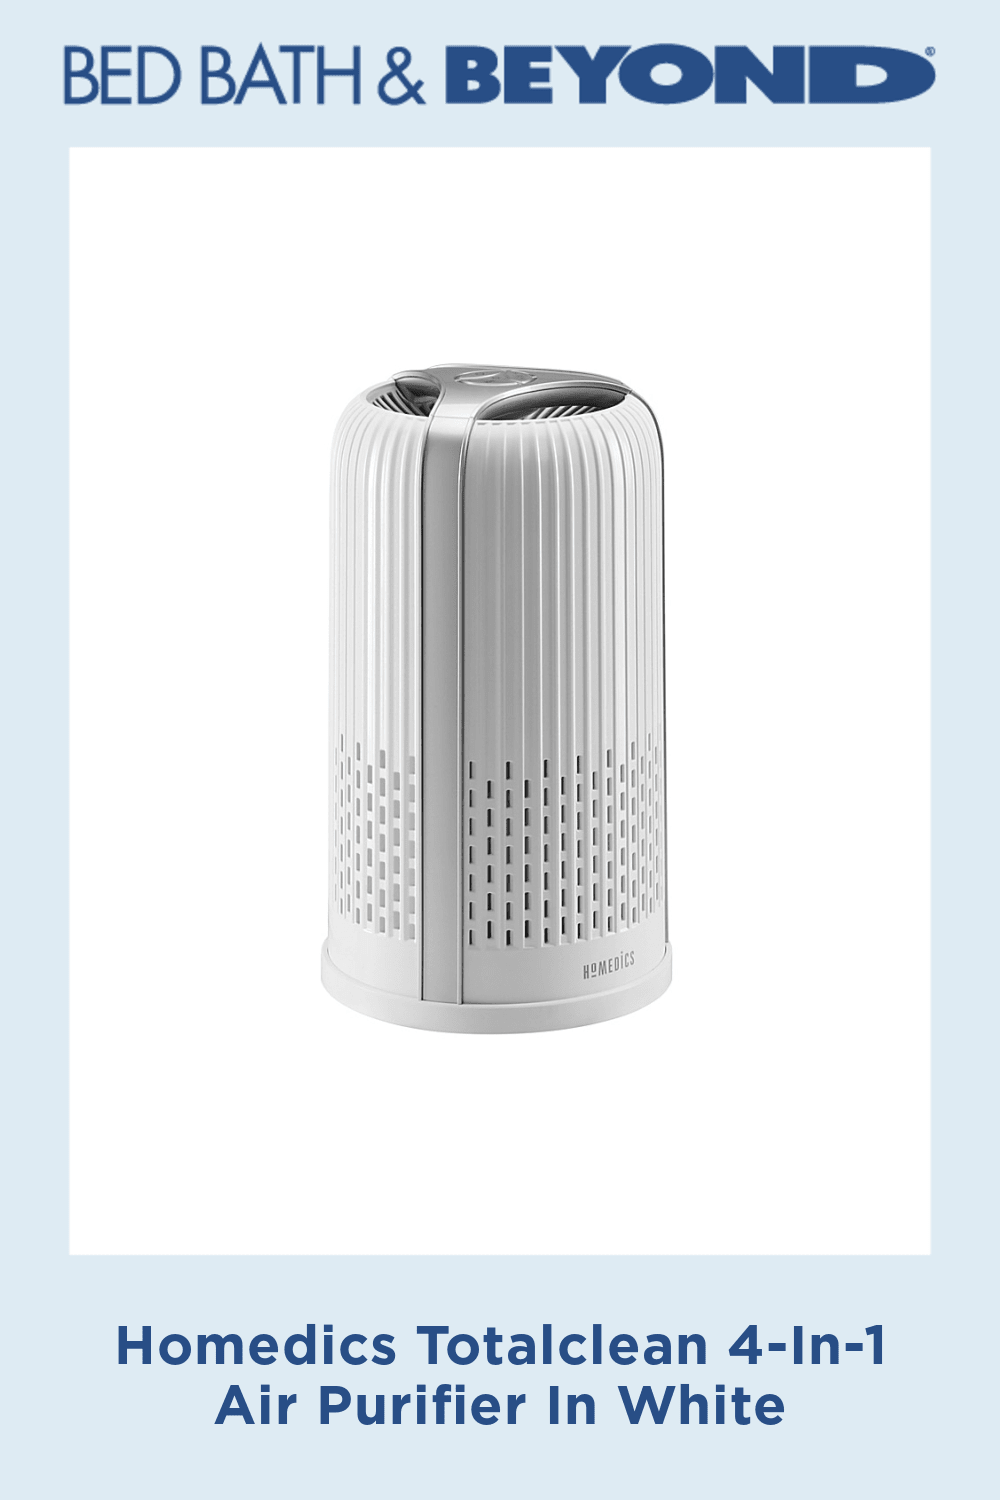 Homedics Totalclean 4-In-1 Air Purifier In White